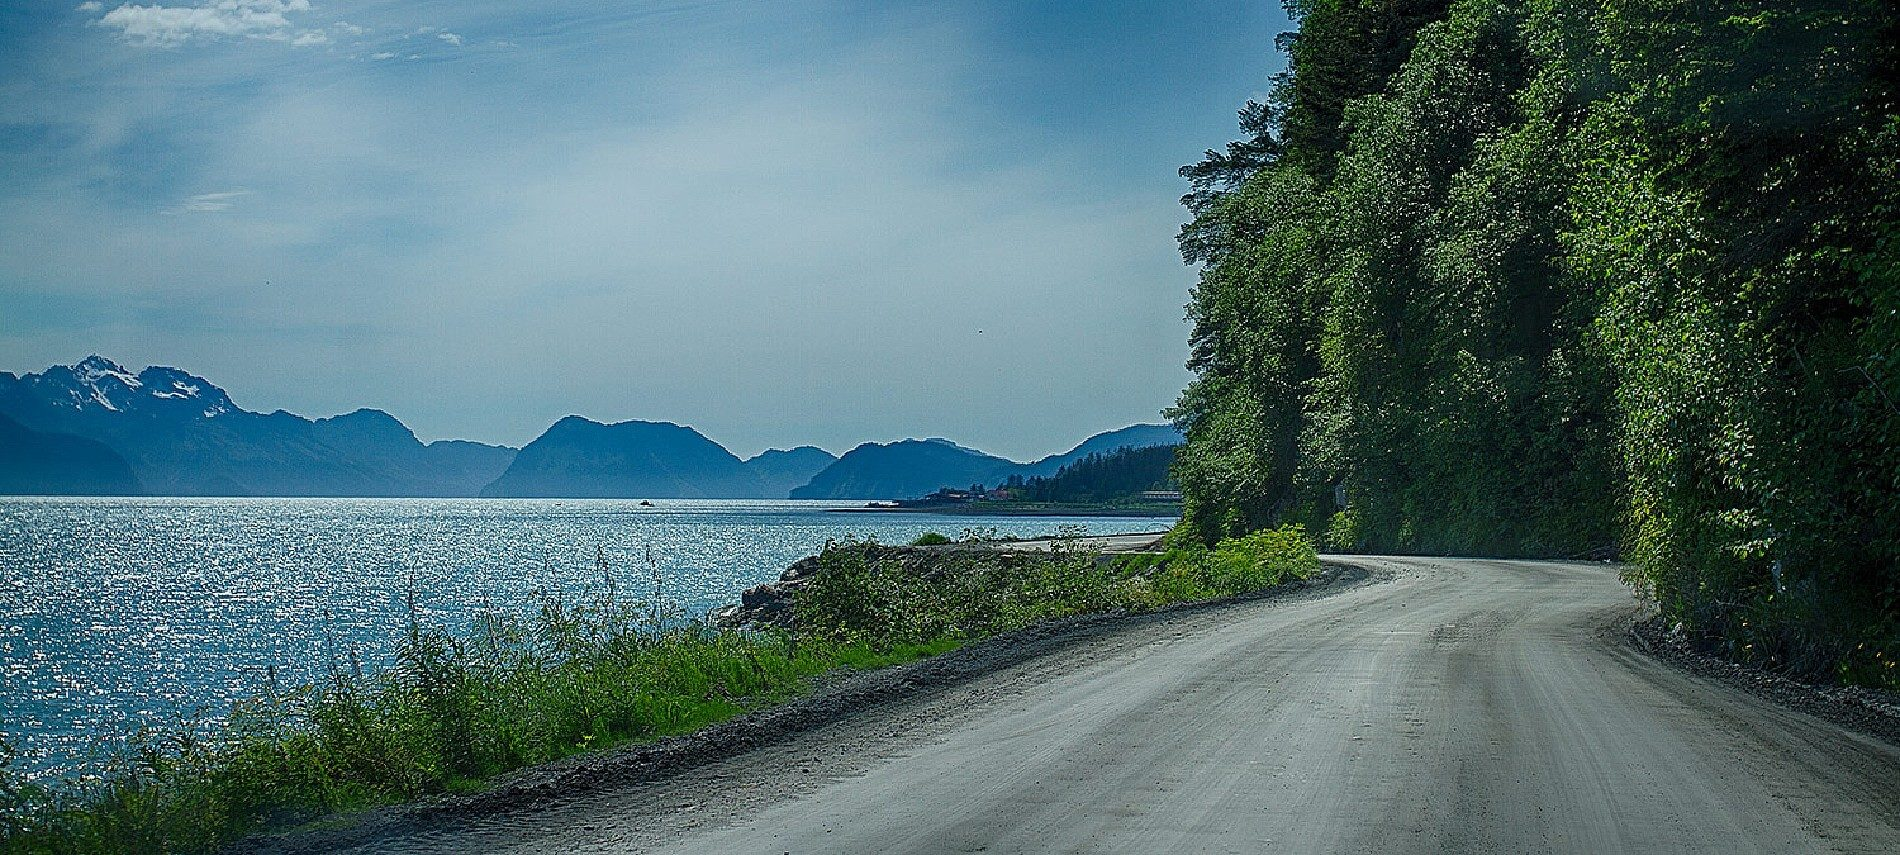 Empty winding road next to wooded area following the edge of a large lake surrounded by a mountain range